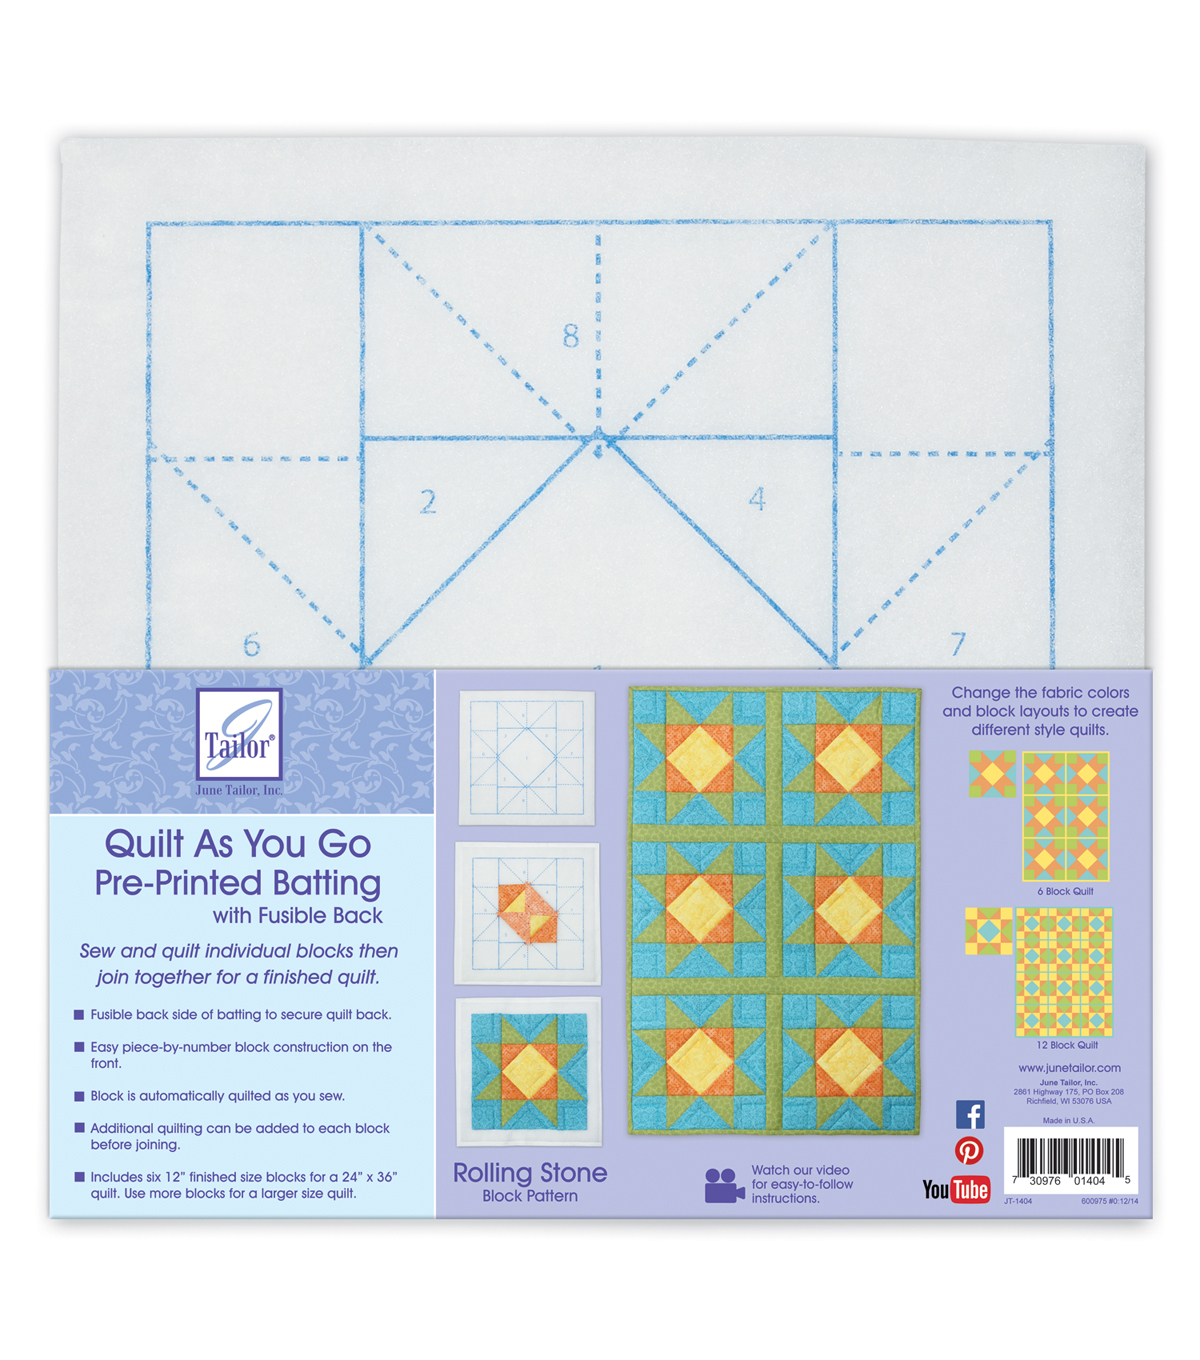 Roll Stone-quilt As You Go Btng